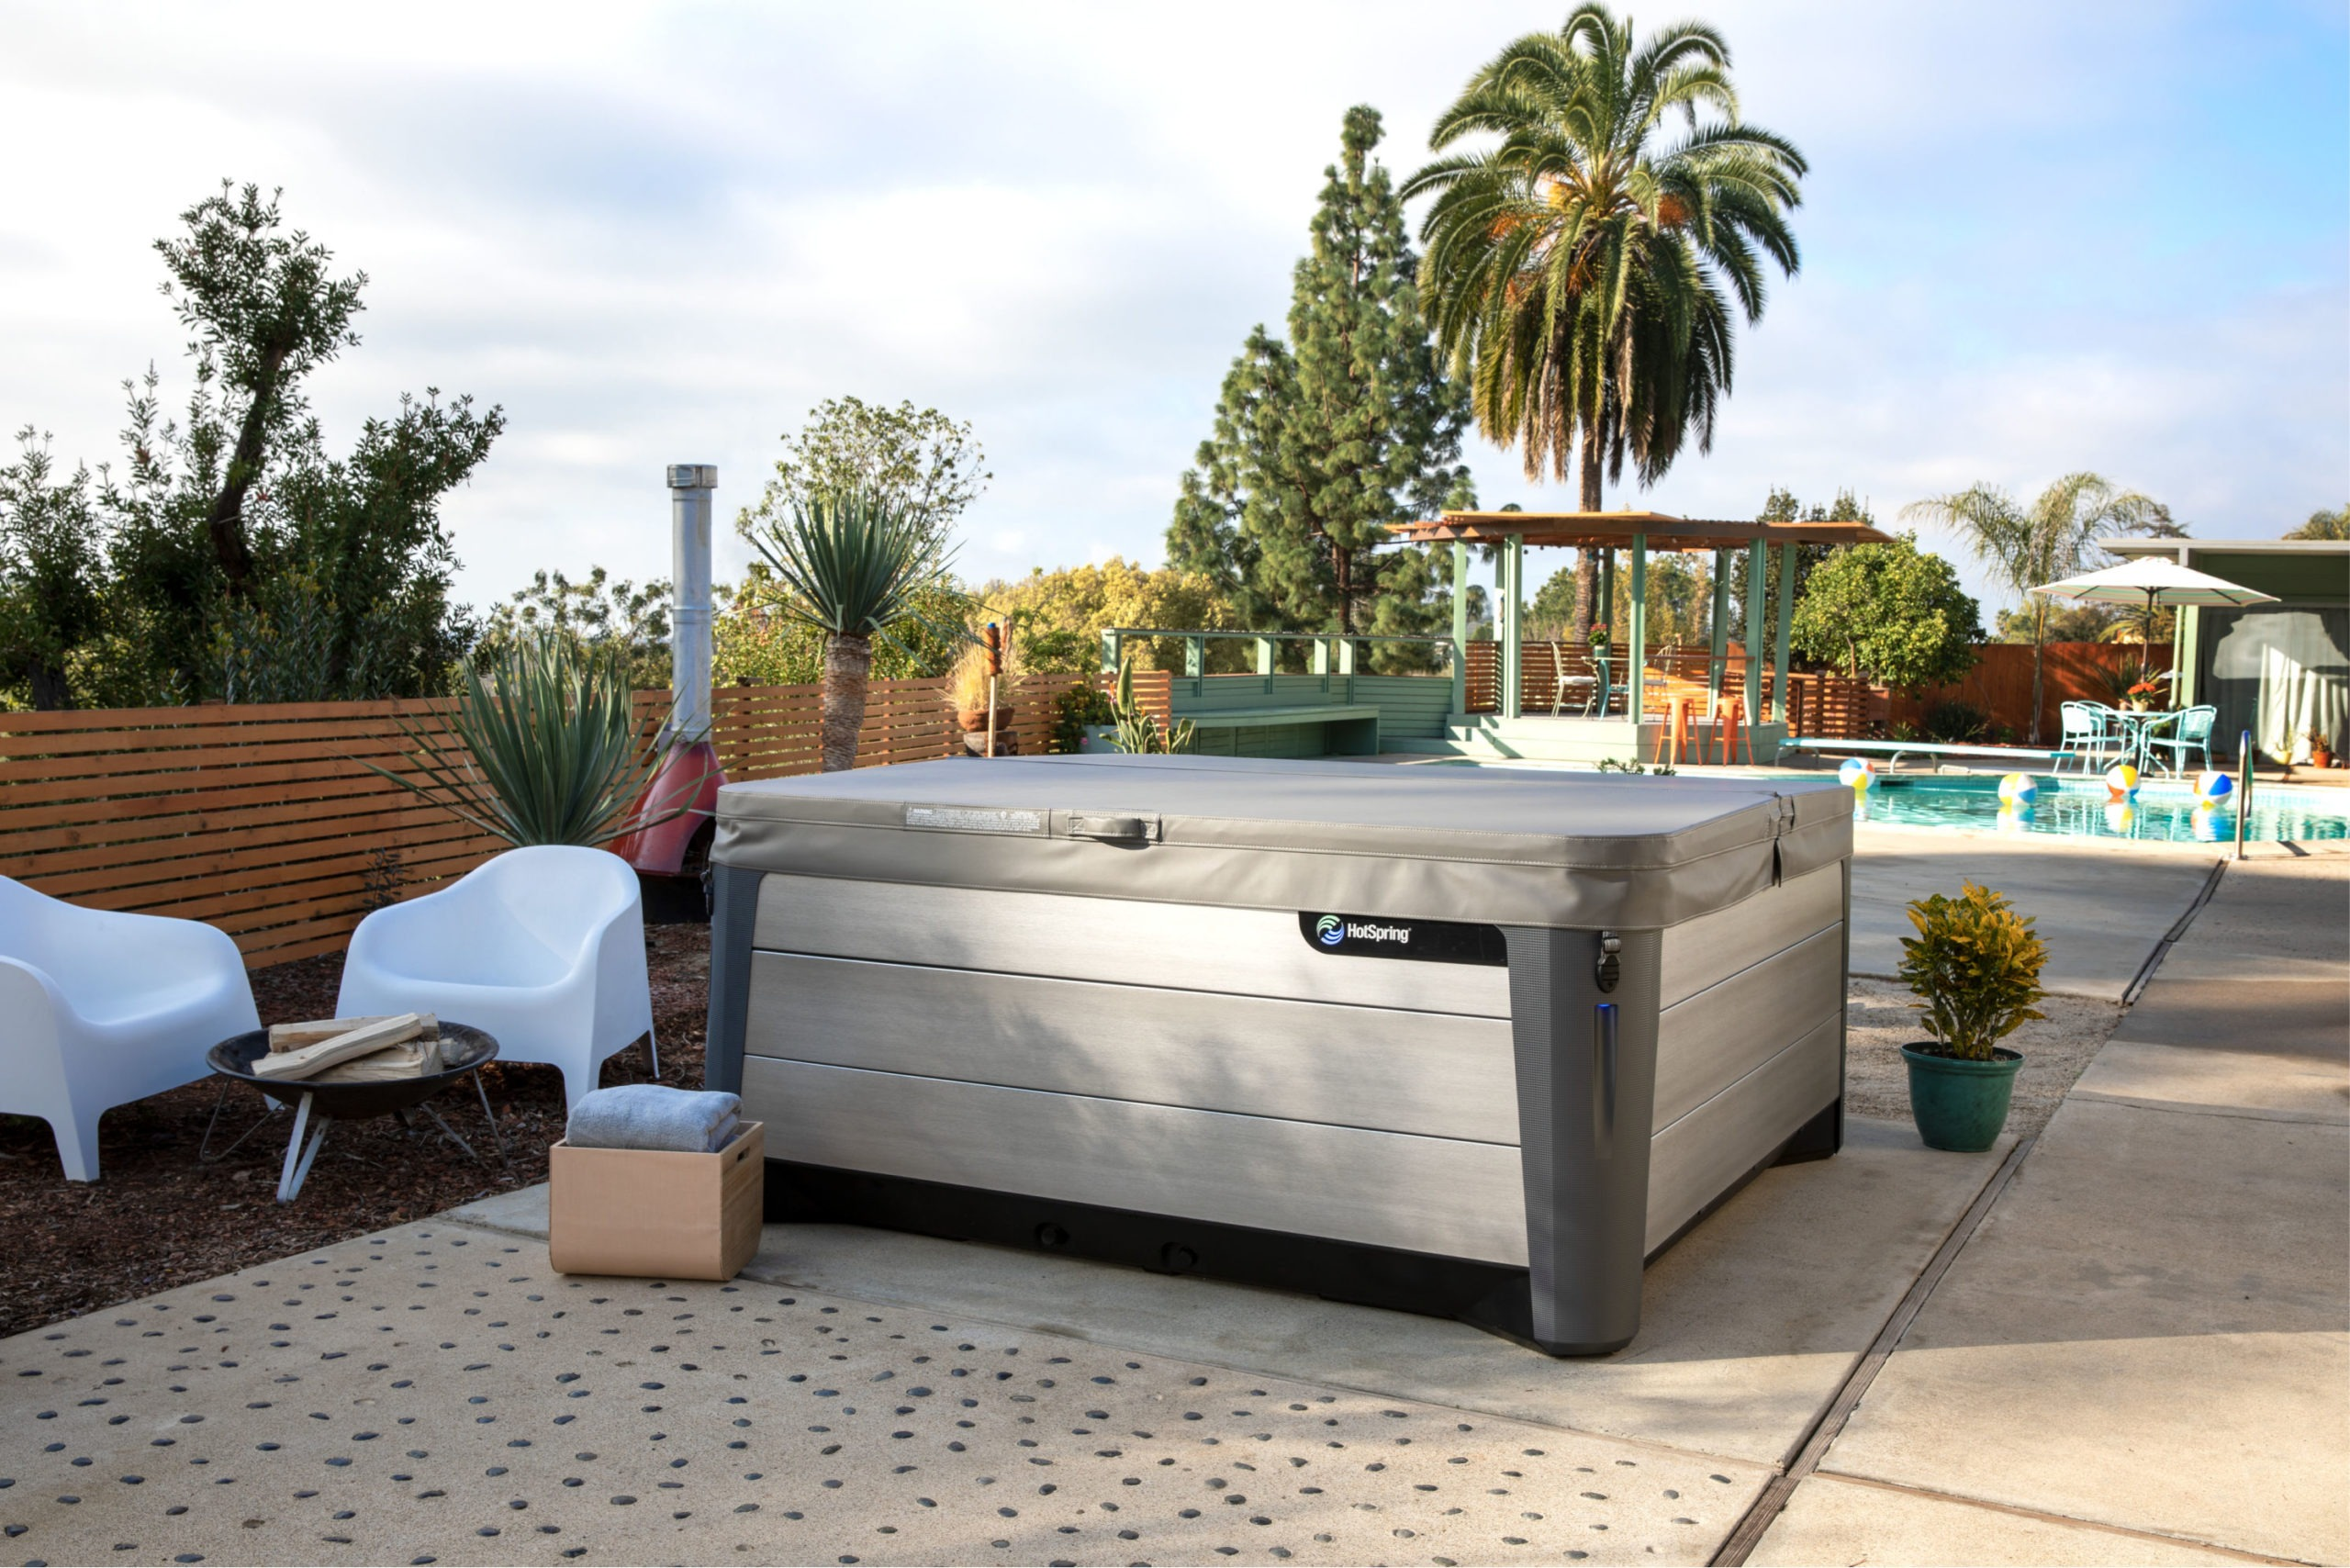 A HotSpring® hot tub installation in the backyard with a cover.